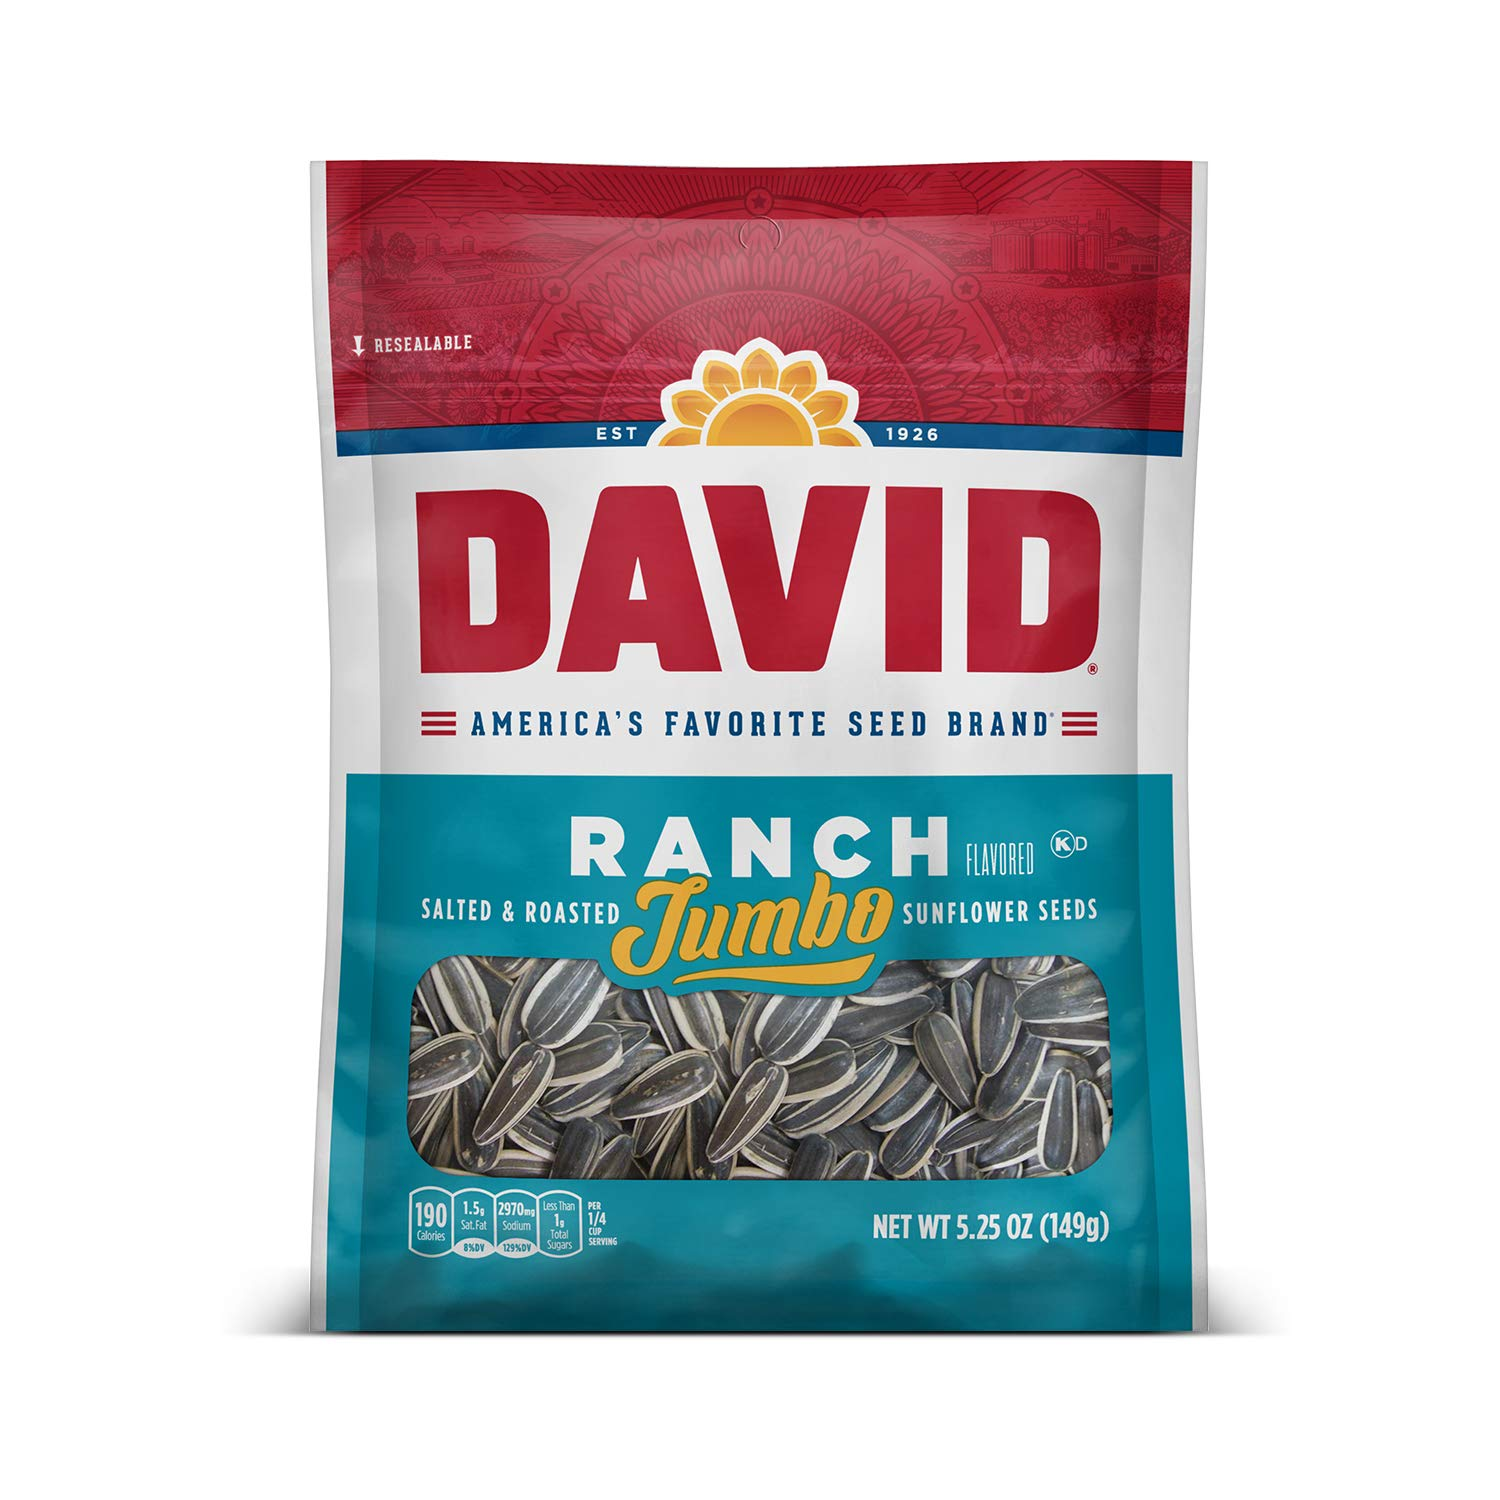 DAVID Roasted and Salted Ranch Jumbo Sunflower Seeds, Keto Friendly, 5.25 oz, 12 Pack